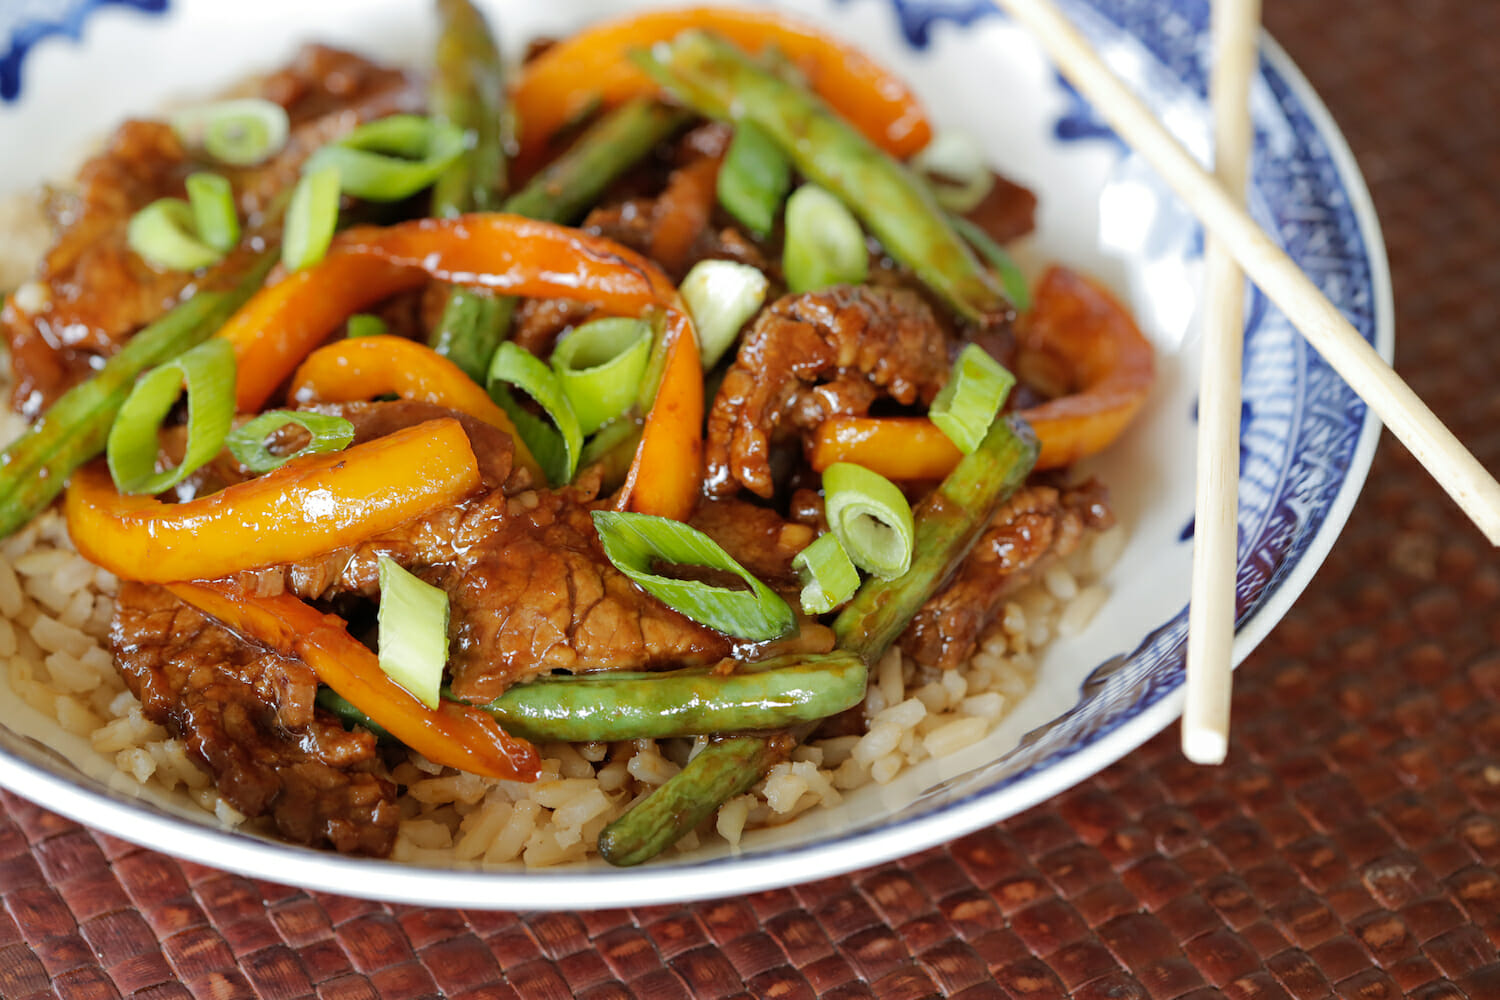 beef and green bean stir fry over rice in a blue bowl with chop sticks